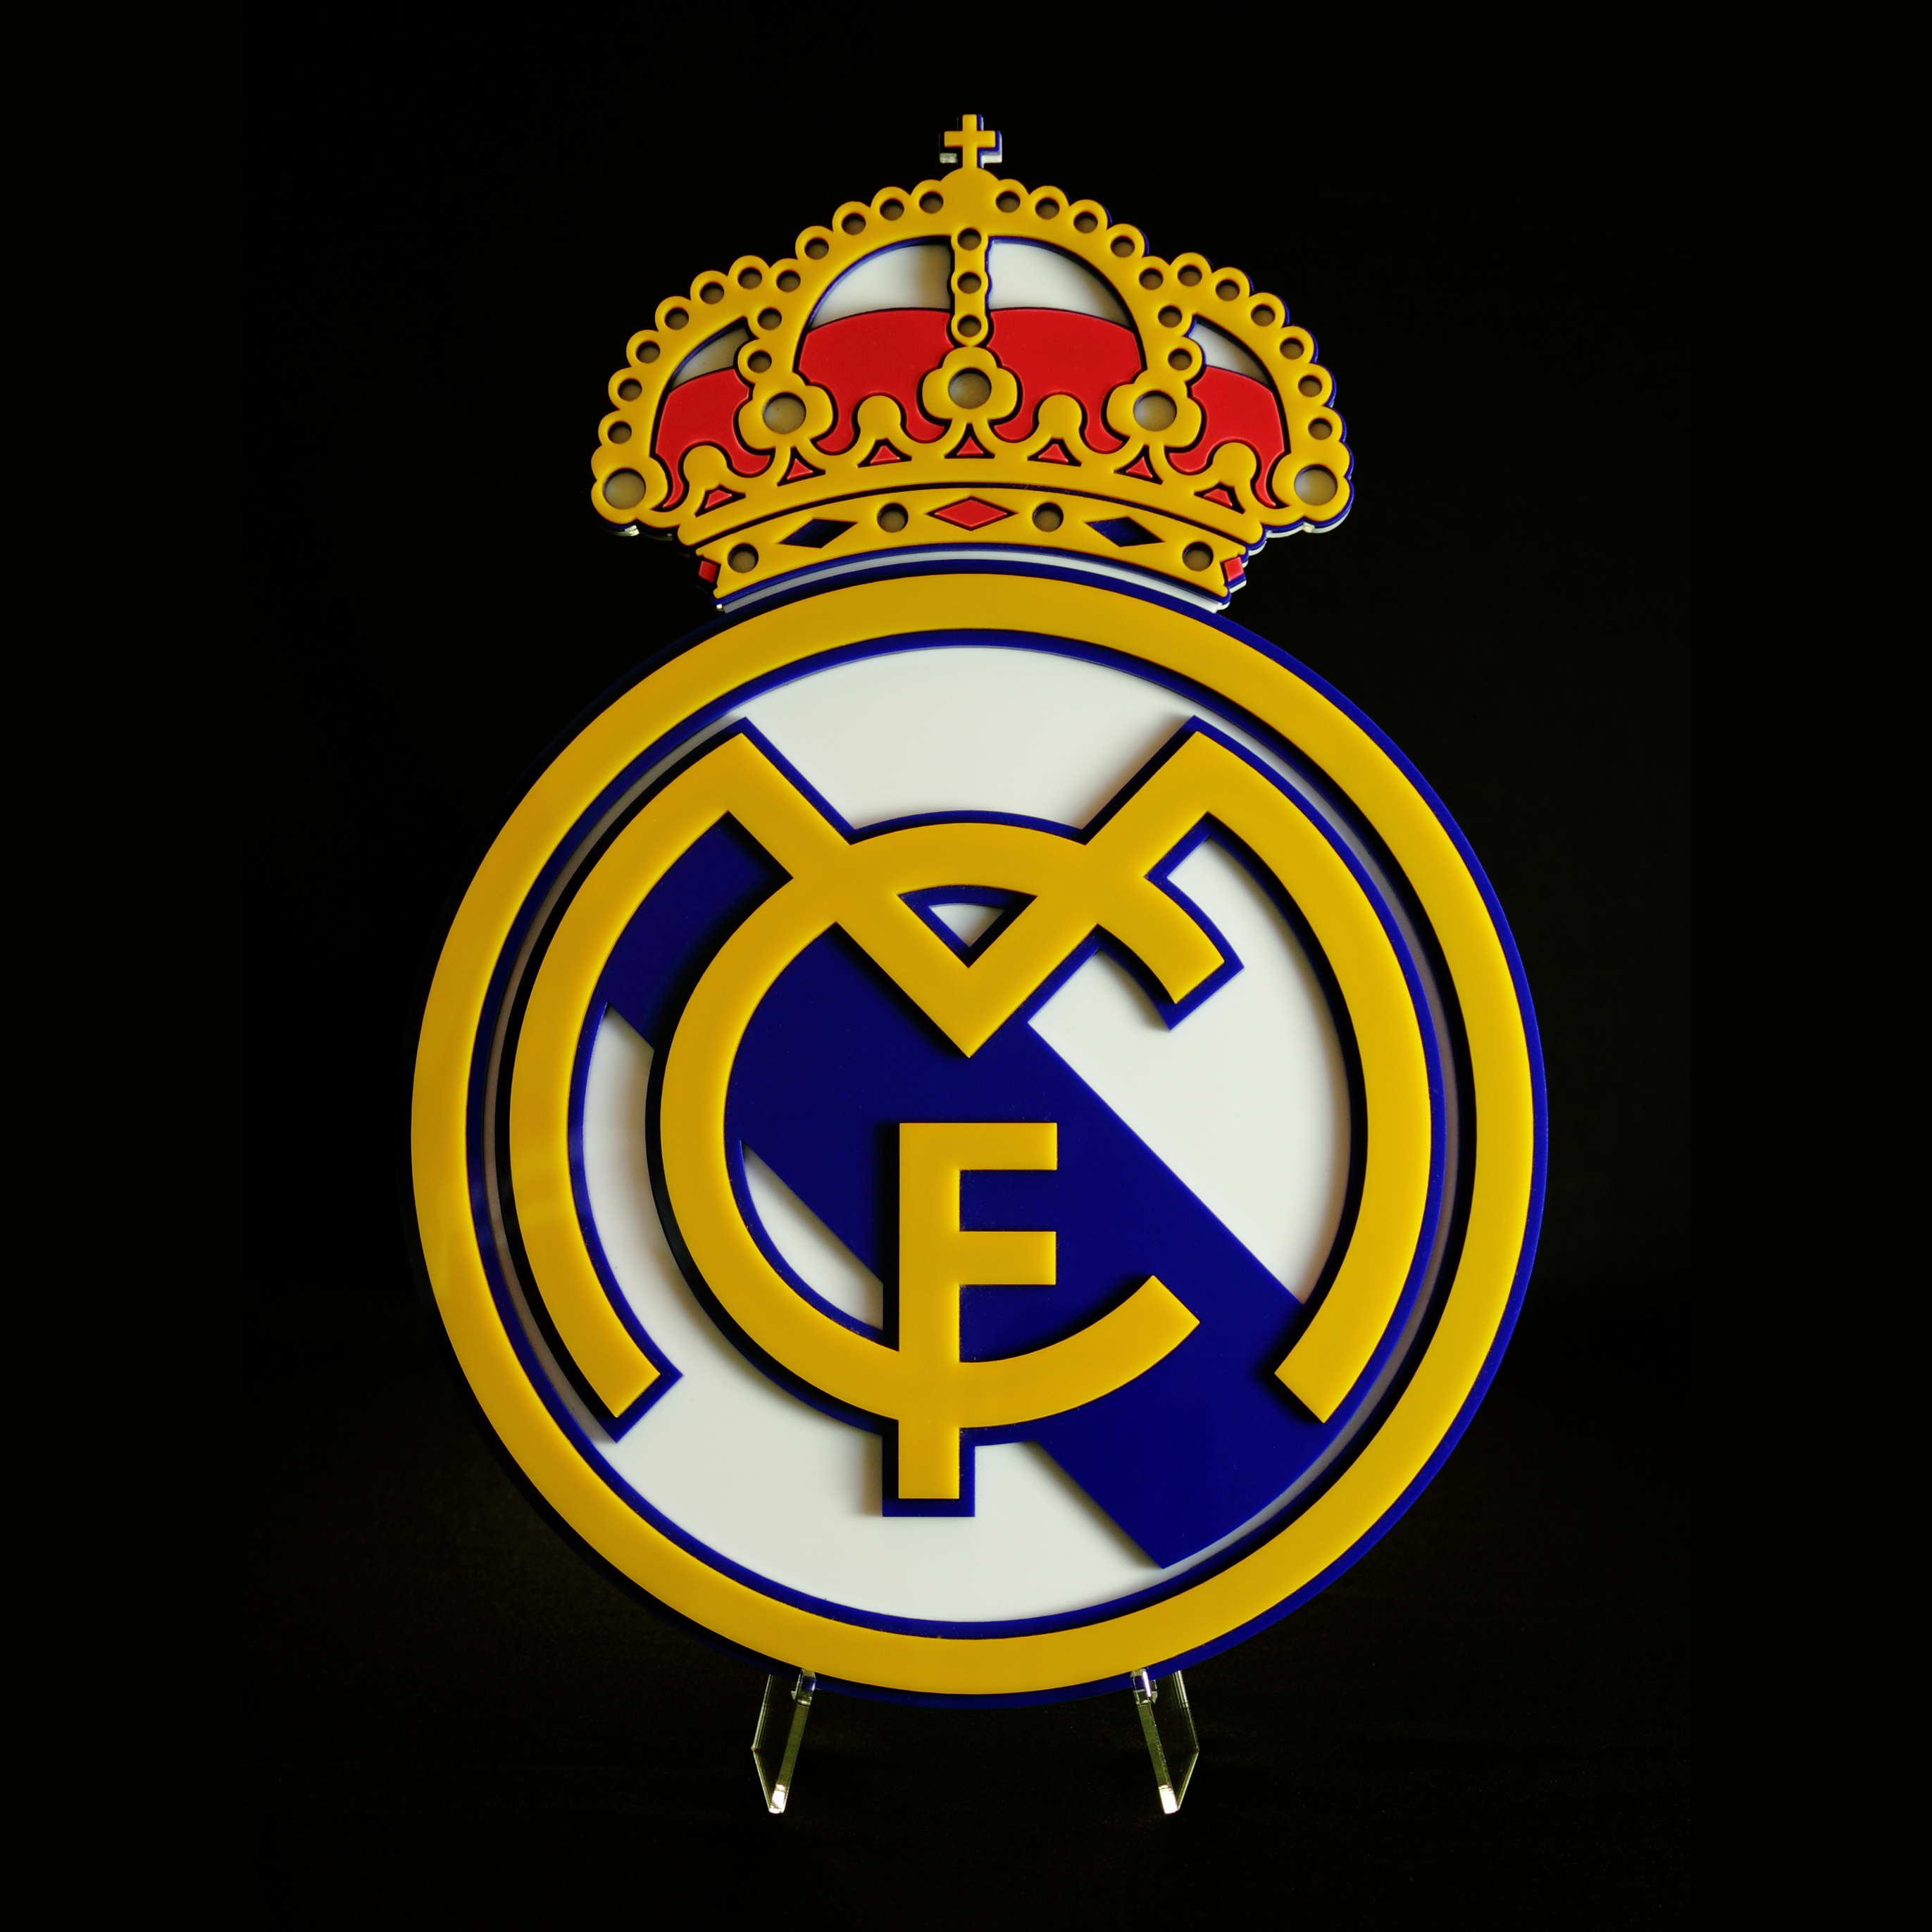 Escudo en relieve (3D) Real Madrid C.F.